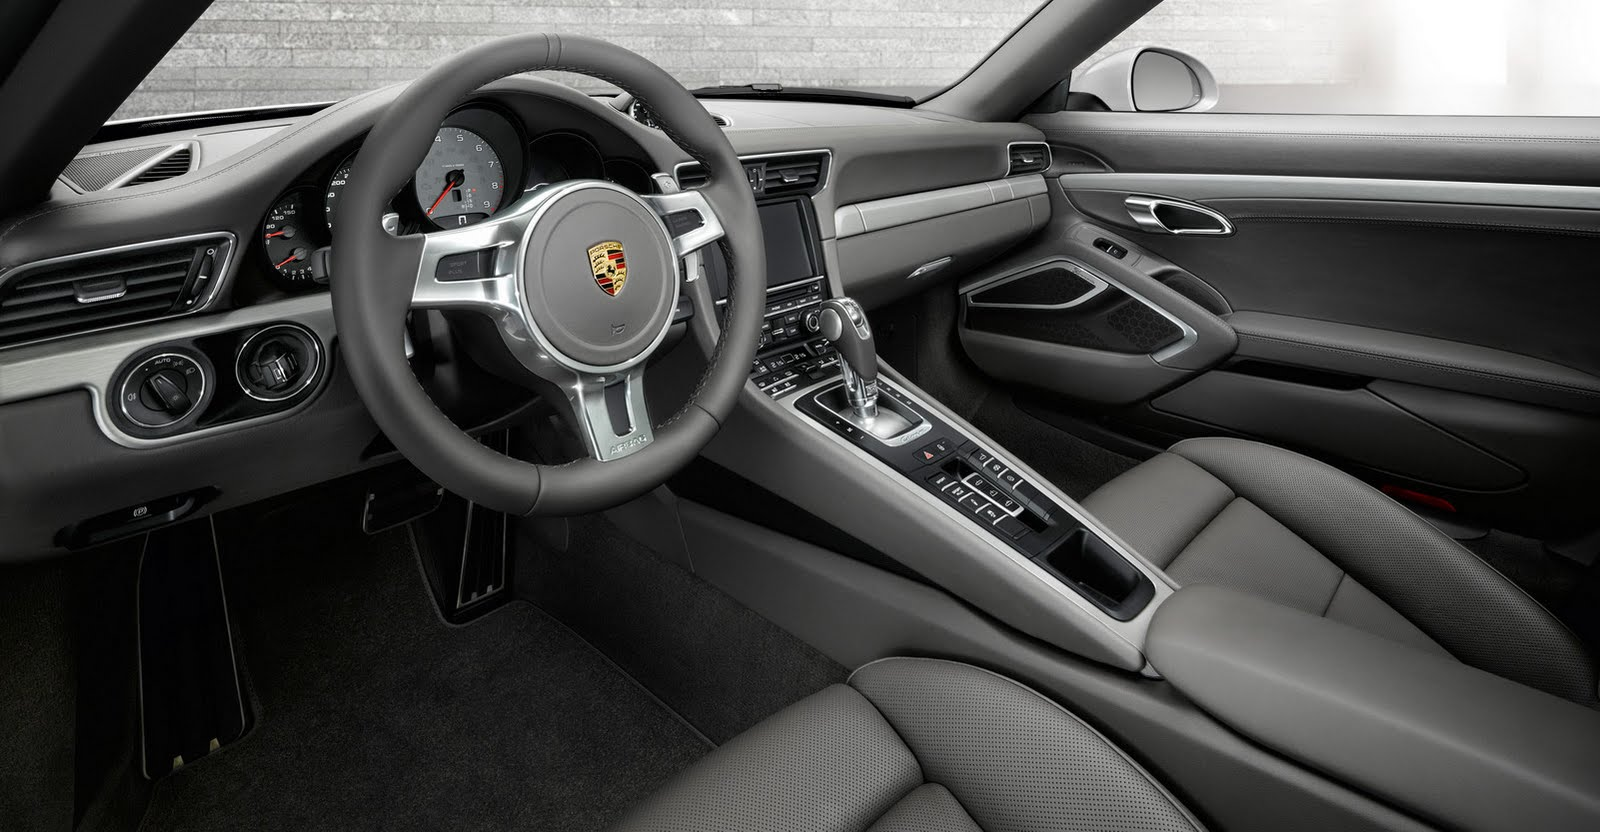 build quality and style are superb in the refined new porsche 911 carrera